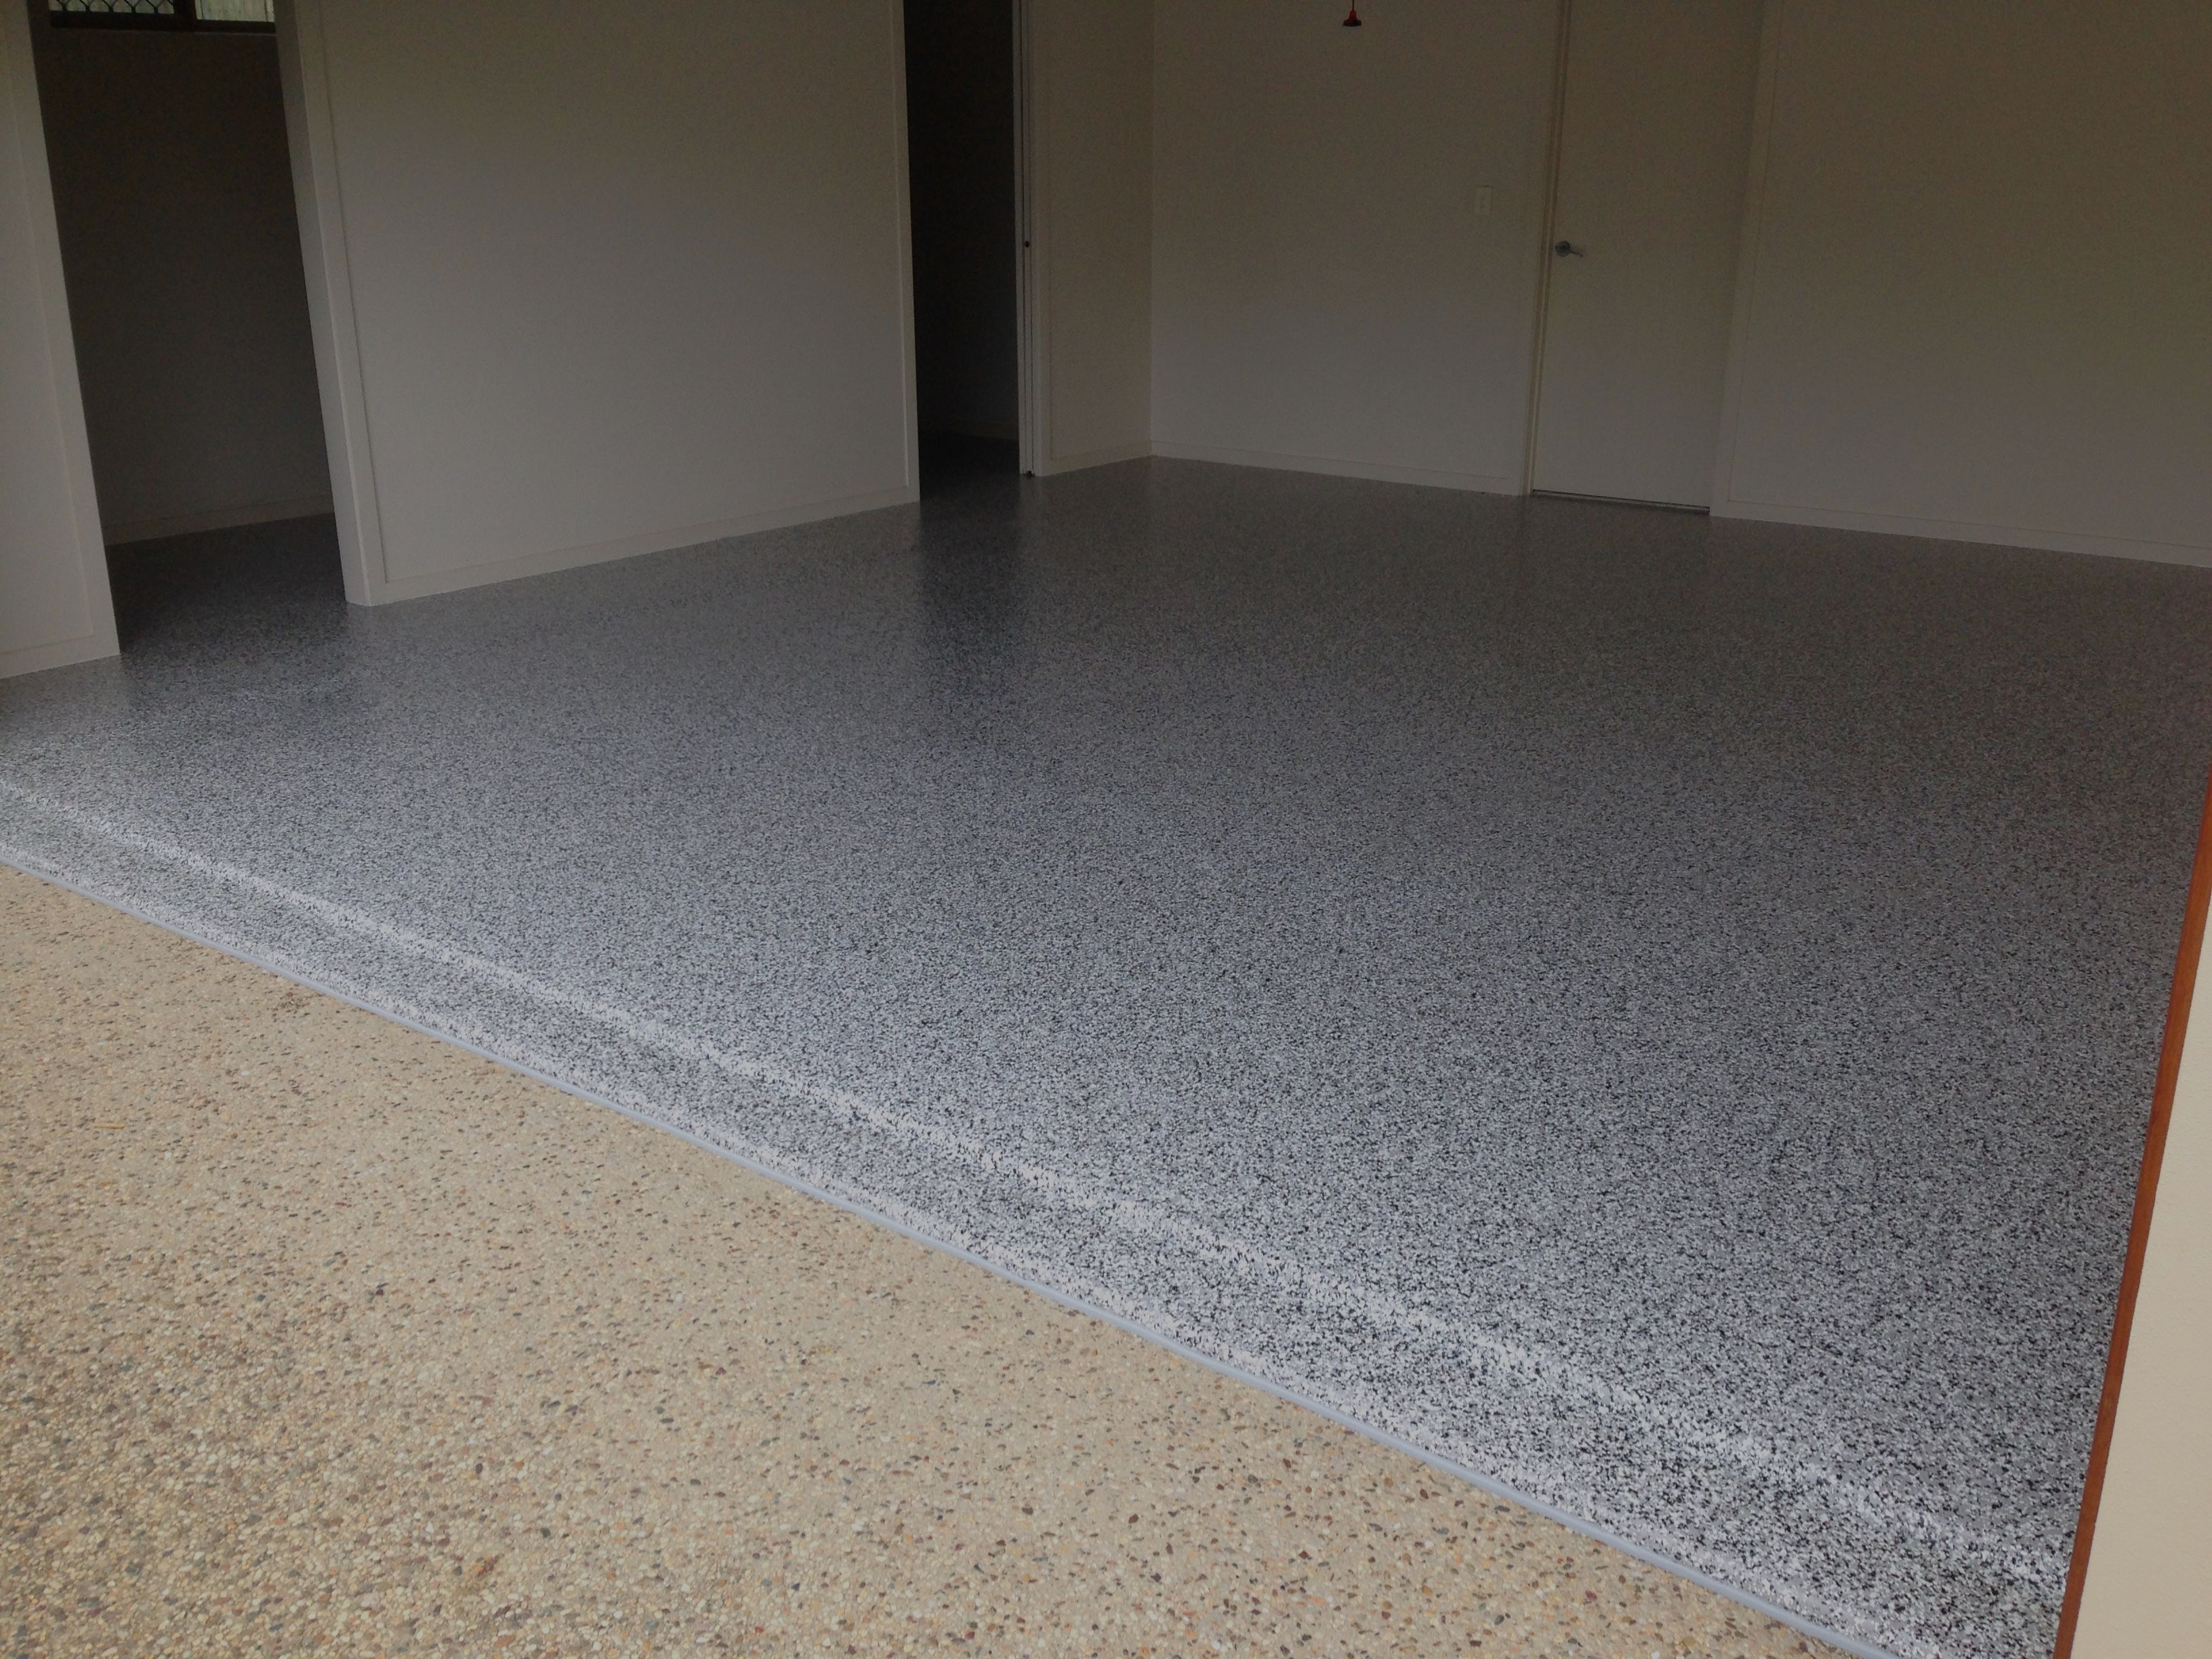 An Epoxy Floor Coating Using Cookies And Cream Flake Over Pipeline Grey At This Beautiful Noosaville Residence Epoxy Floor Epoxy Floor Coating Floor Coating